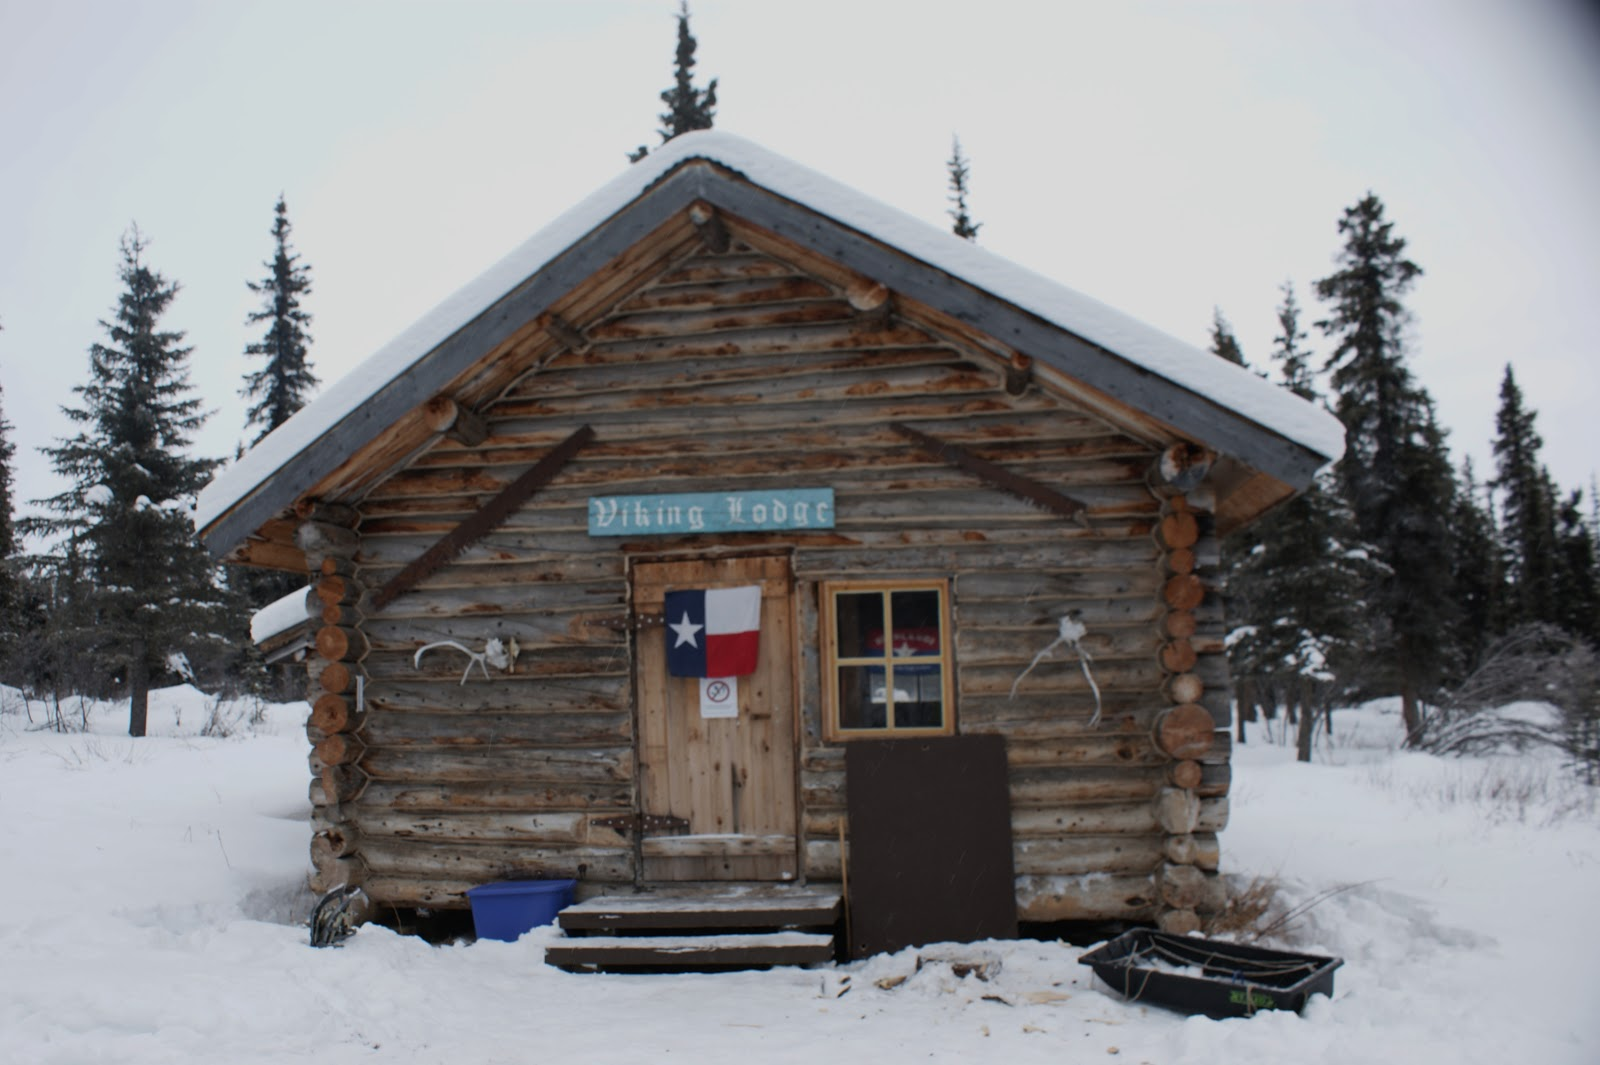 Just Back From An Awesome Week Long Visit To Viking Lodge In Wrangell St  Elias National Park. This Homesteaderu0027s Cabin Was Built In The Early U002770s  And Is ...